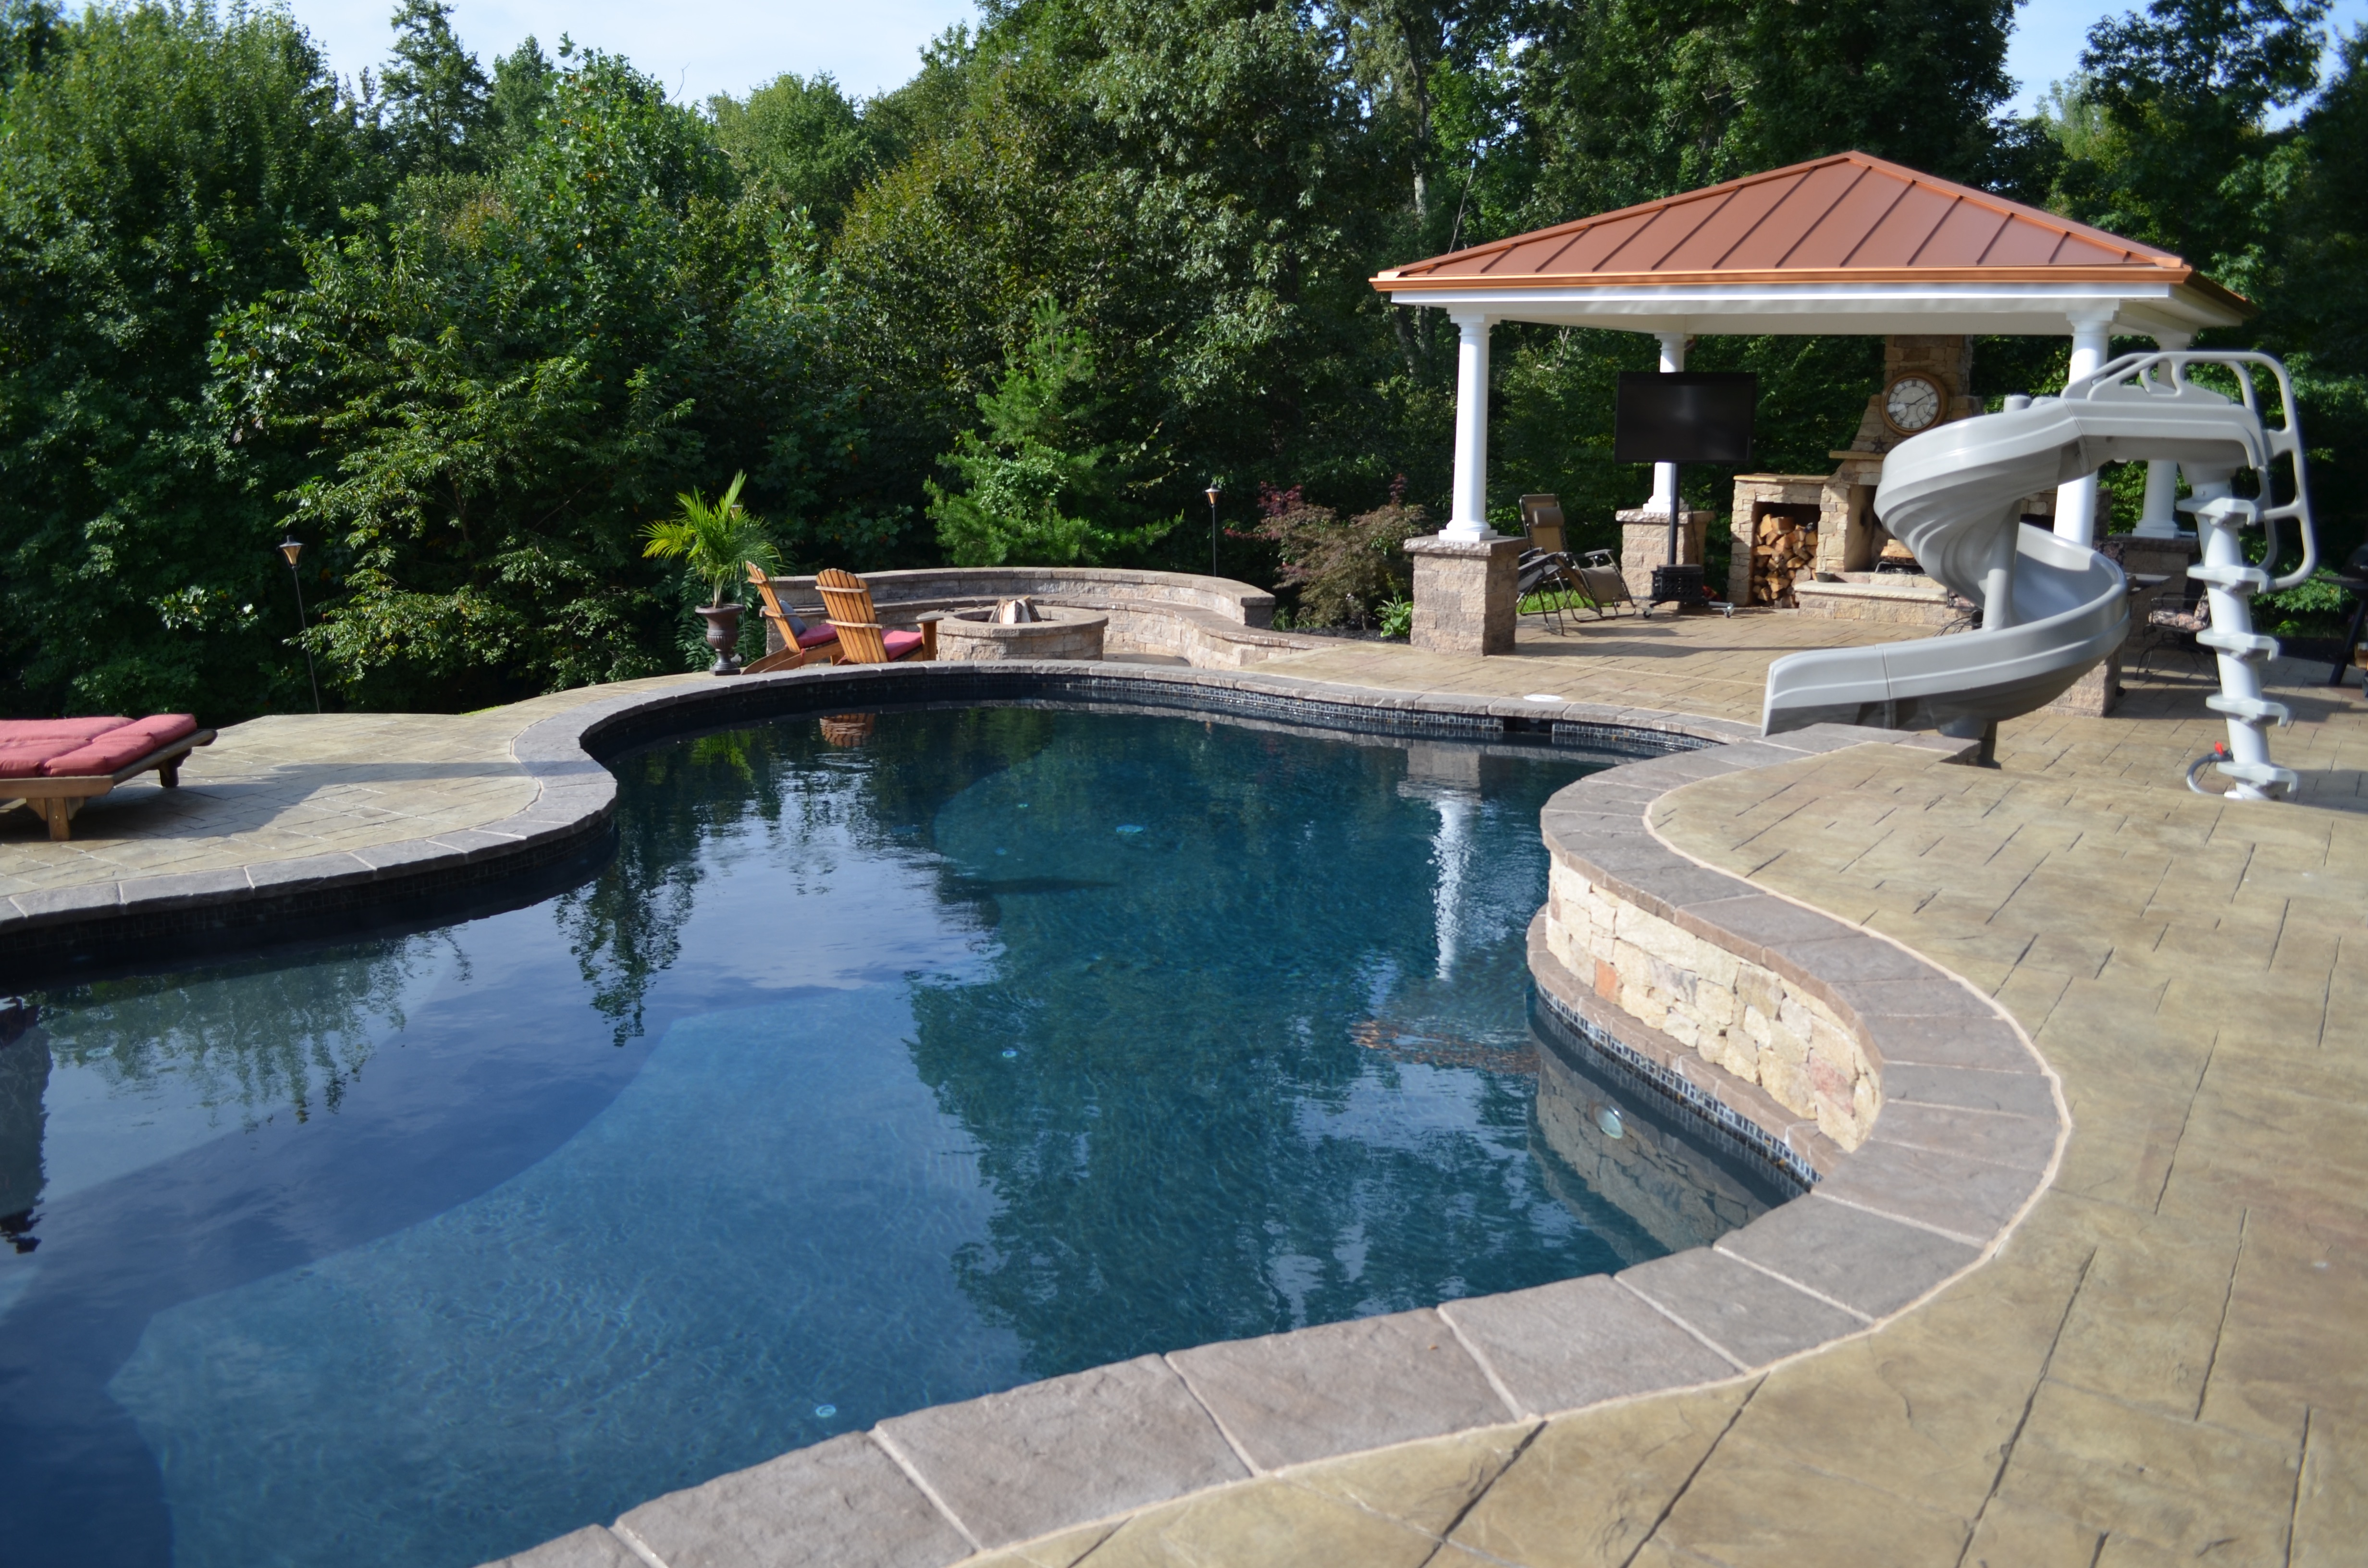 Swimming Pool Pavilion & Fire Pit